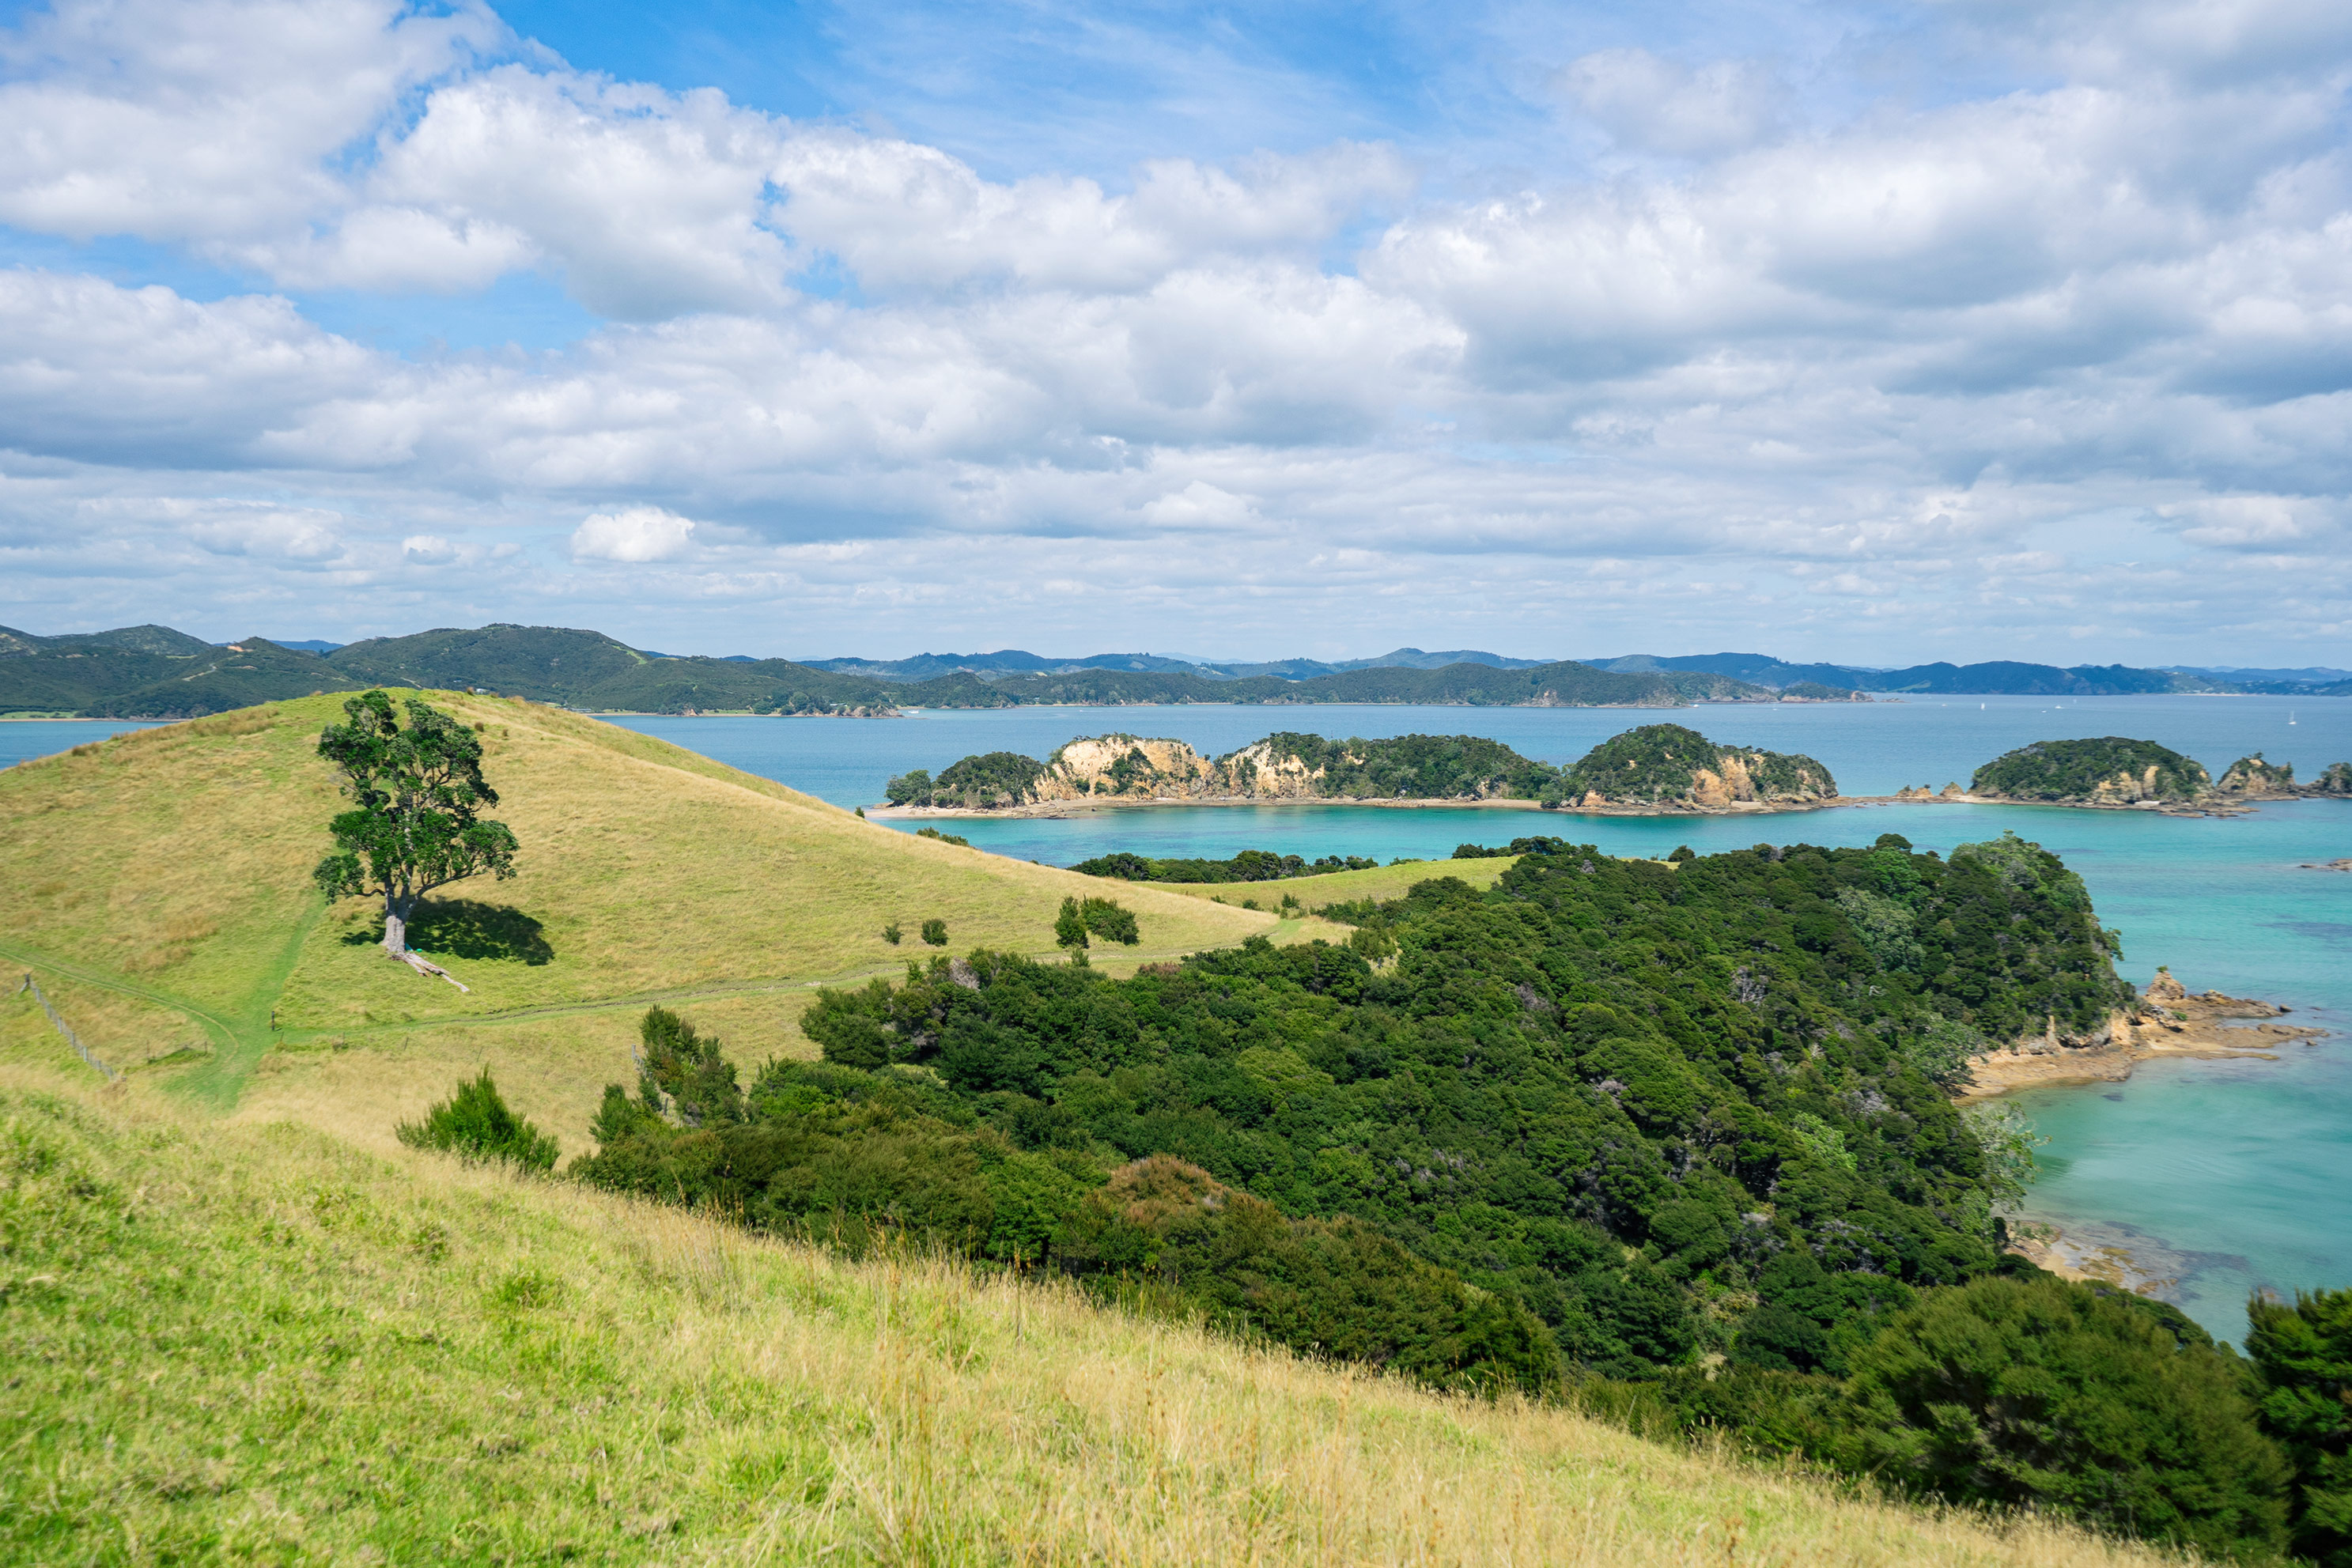 Bay of Islands Urupukapuka View